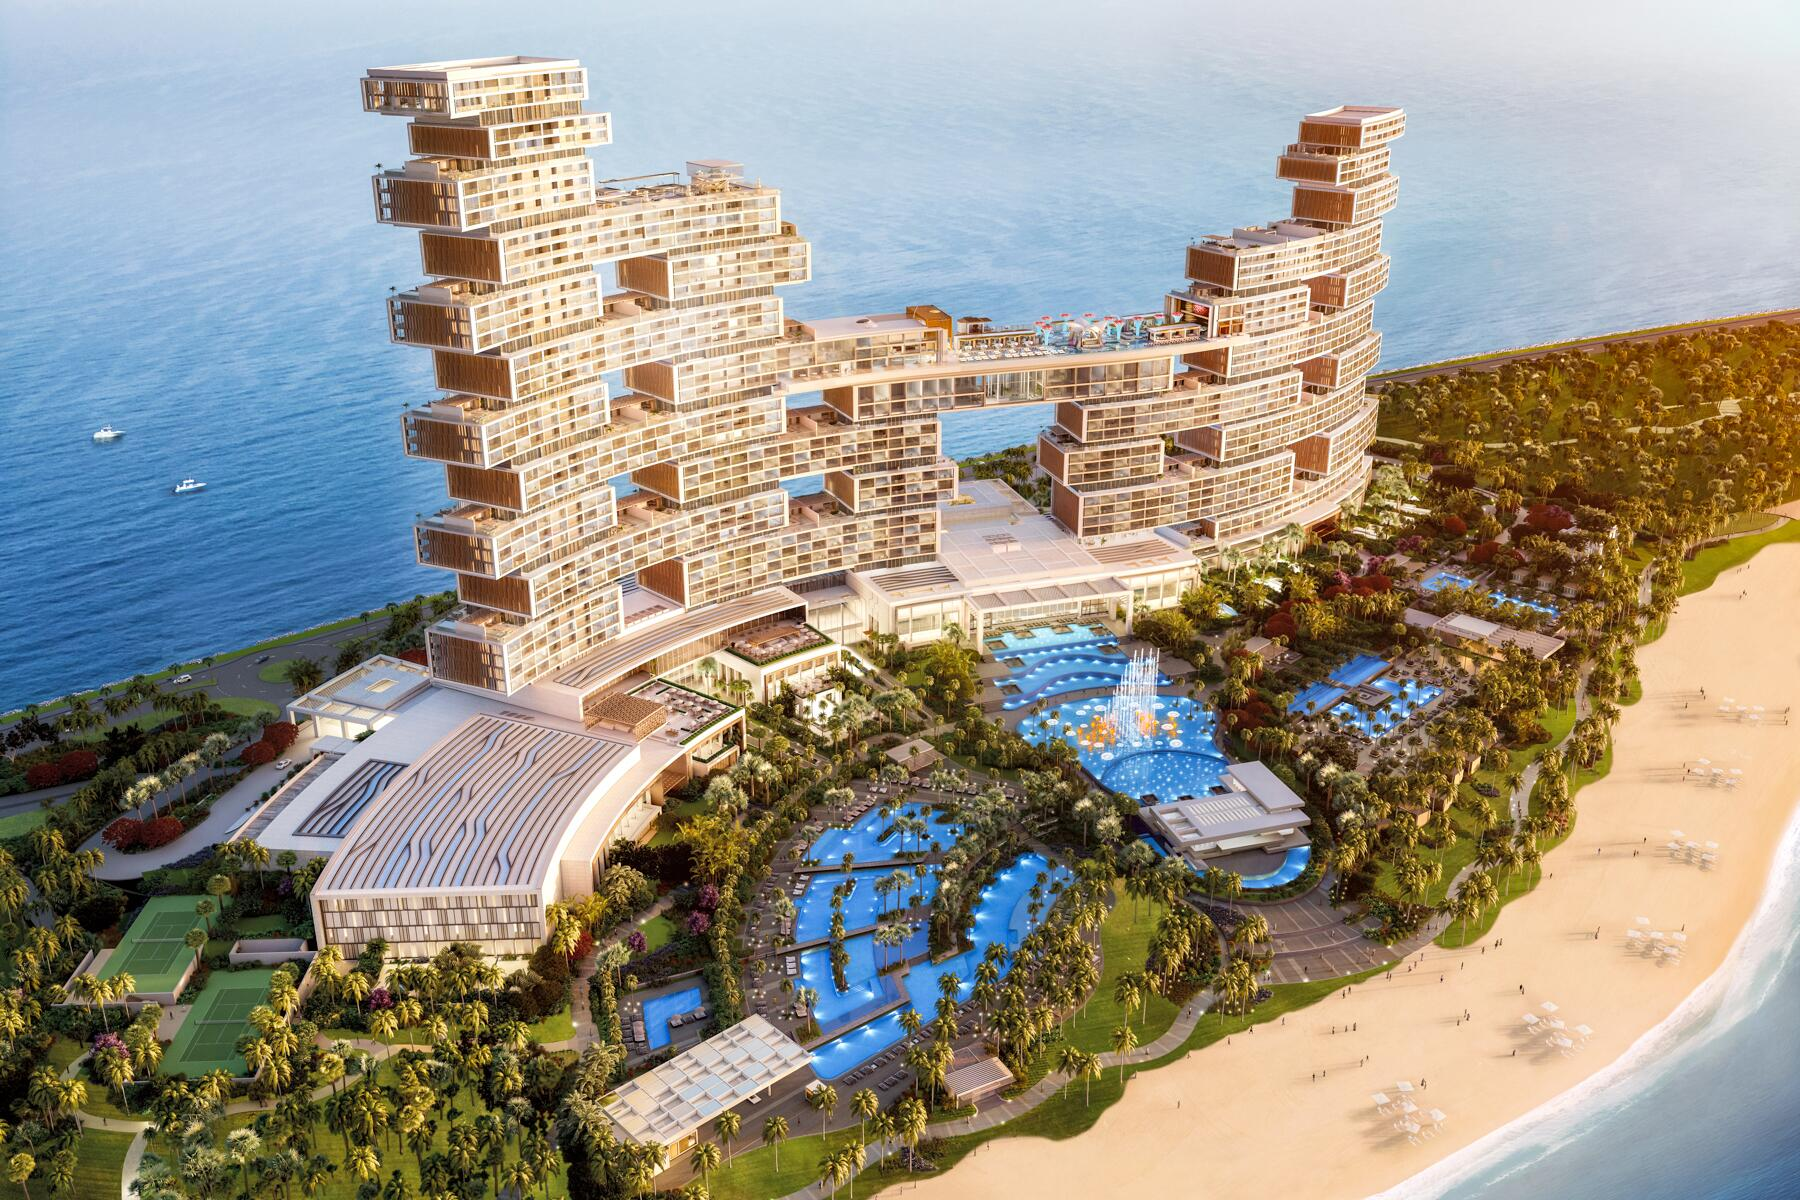 07_NewHotels2020__The Royal Atlantis_11.) theroyalatlantisresortampresidences-skycourtyard-bykpfassociates